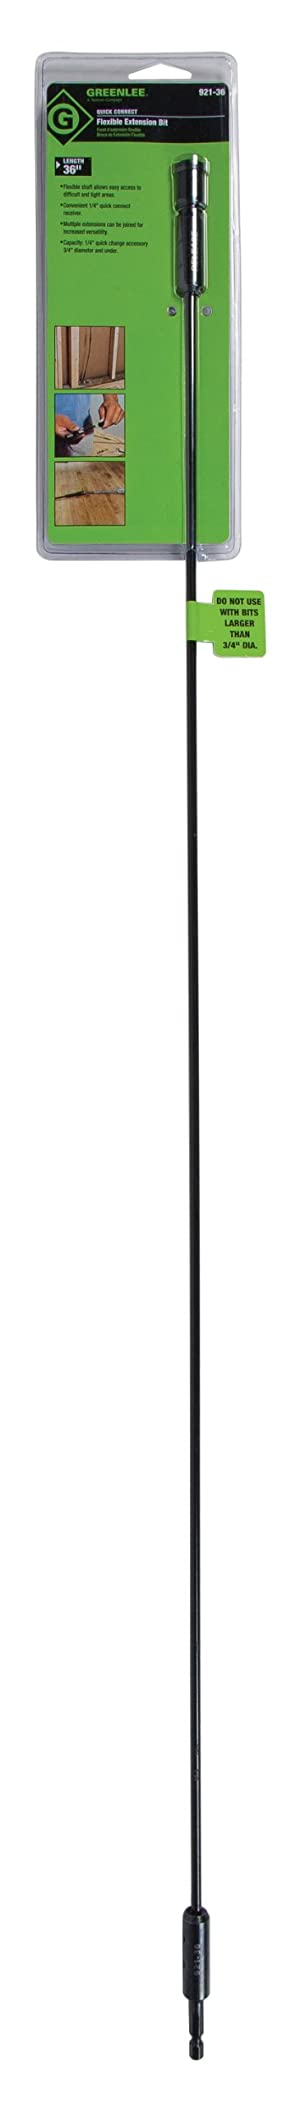 Greenlee 921-36 Quick Change Extension, 3/16 by 36-Inch